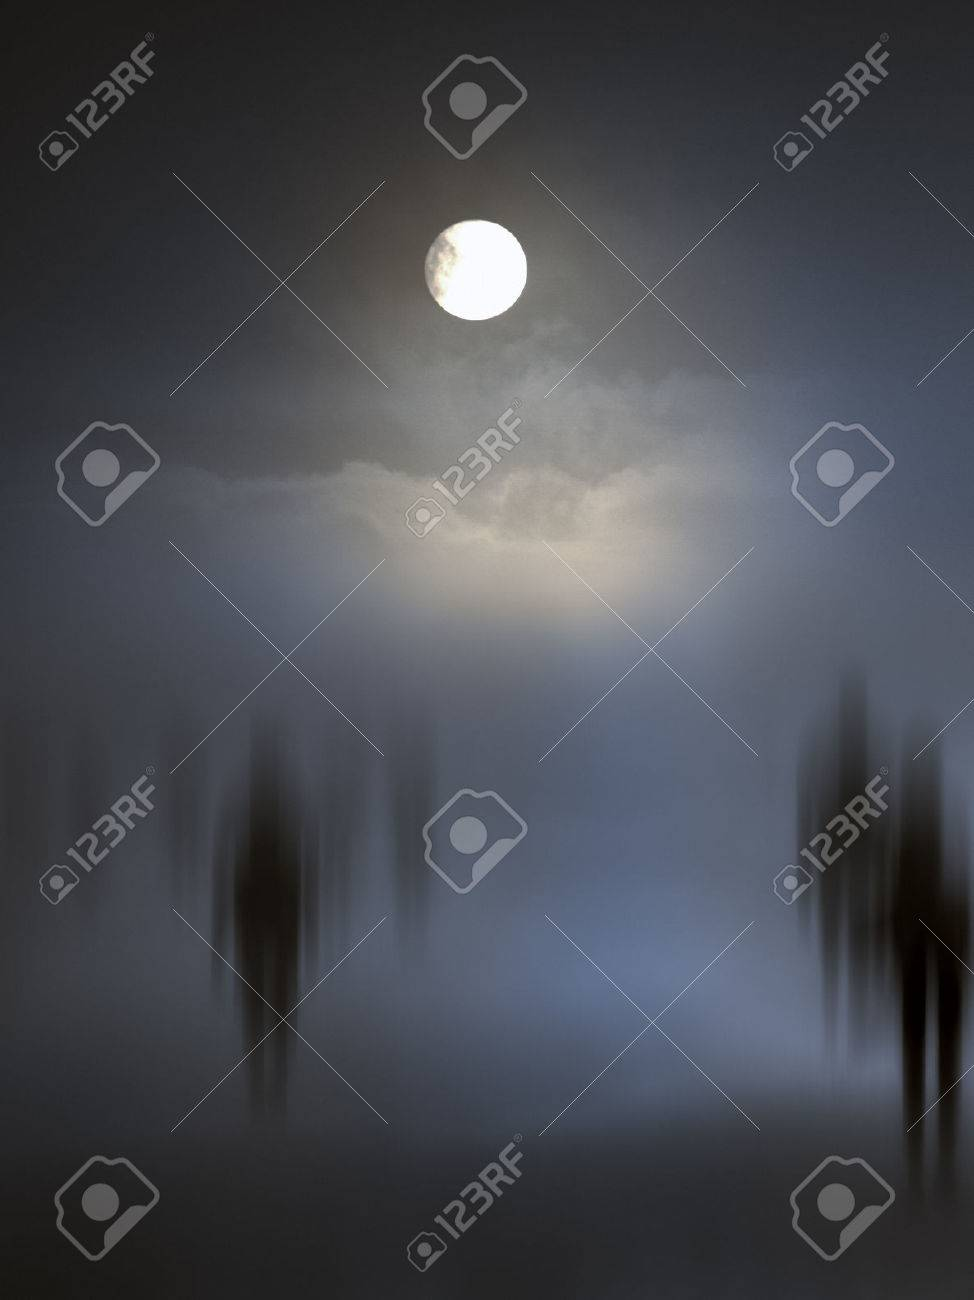 Spooky diffuse entities walking. Other versions in my portfolio. - 29582355